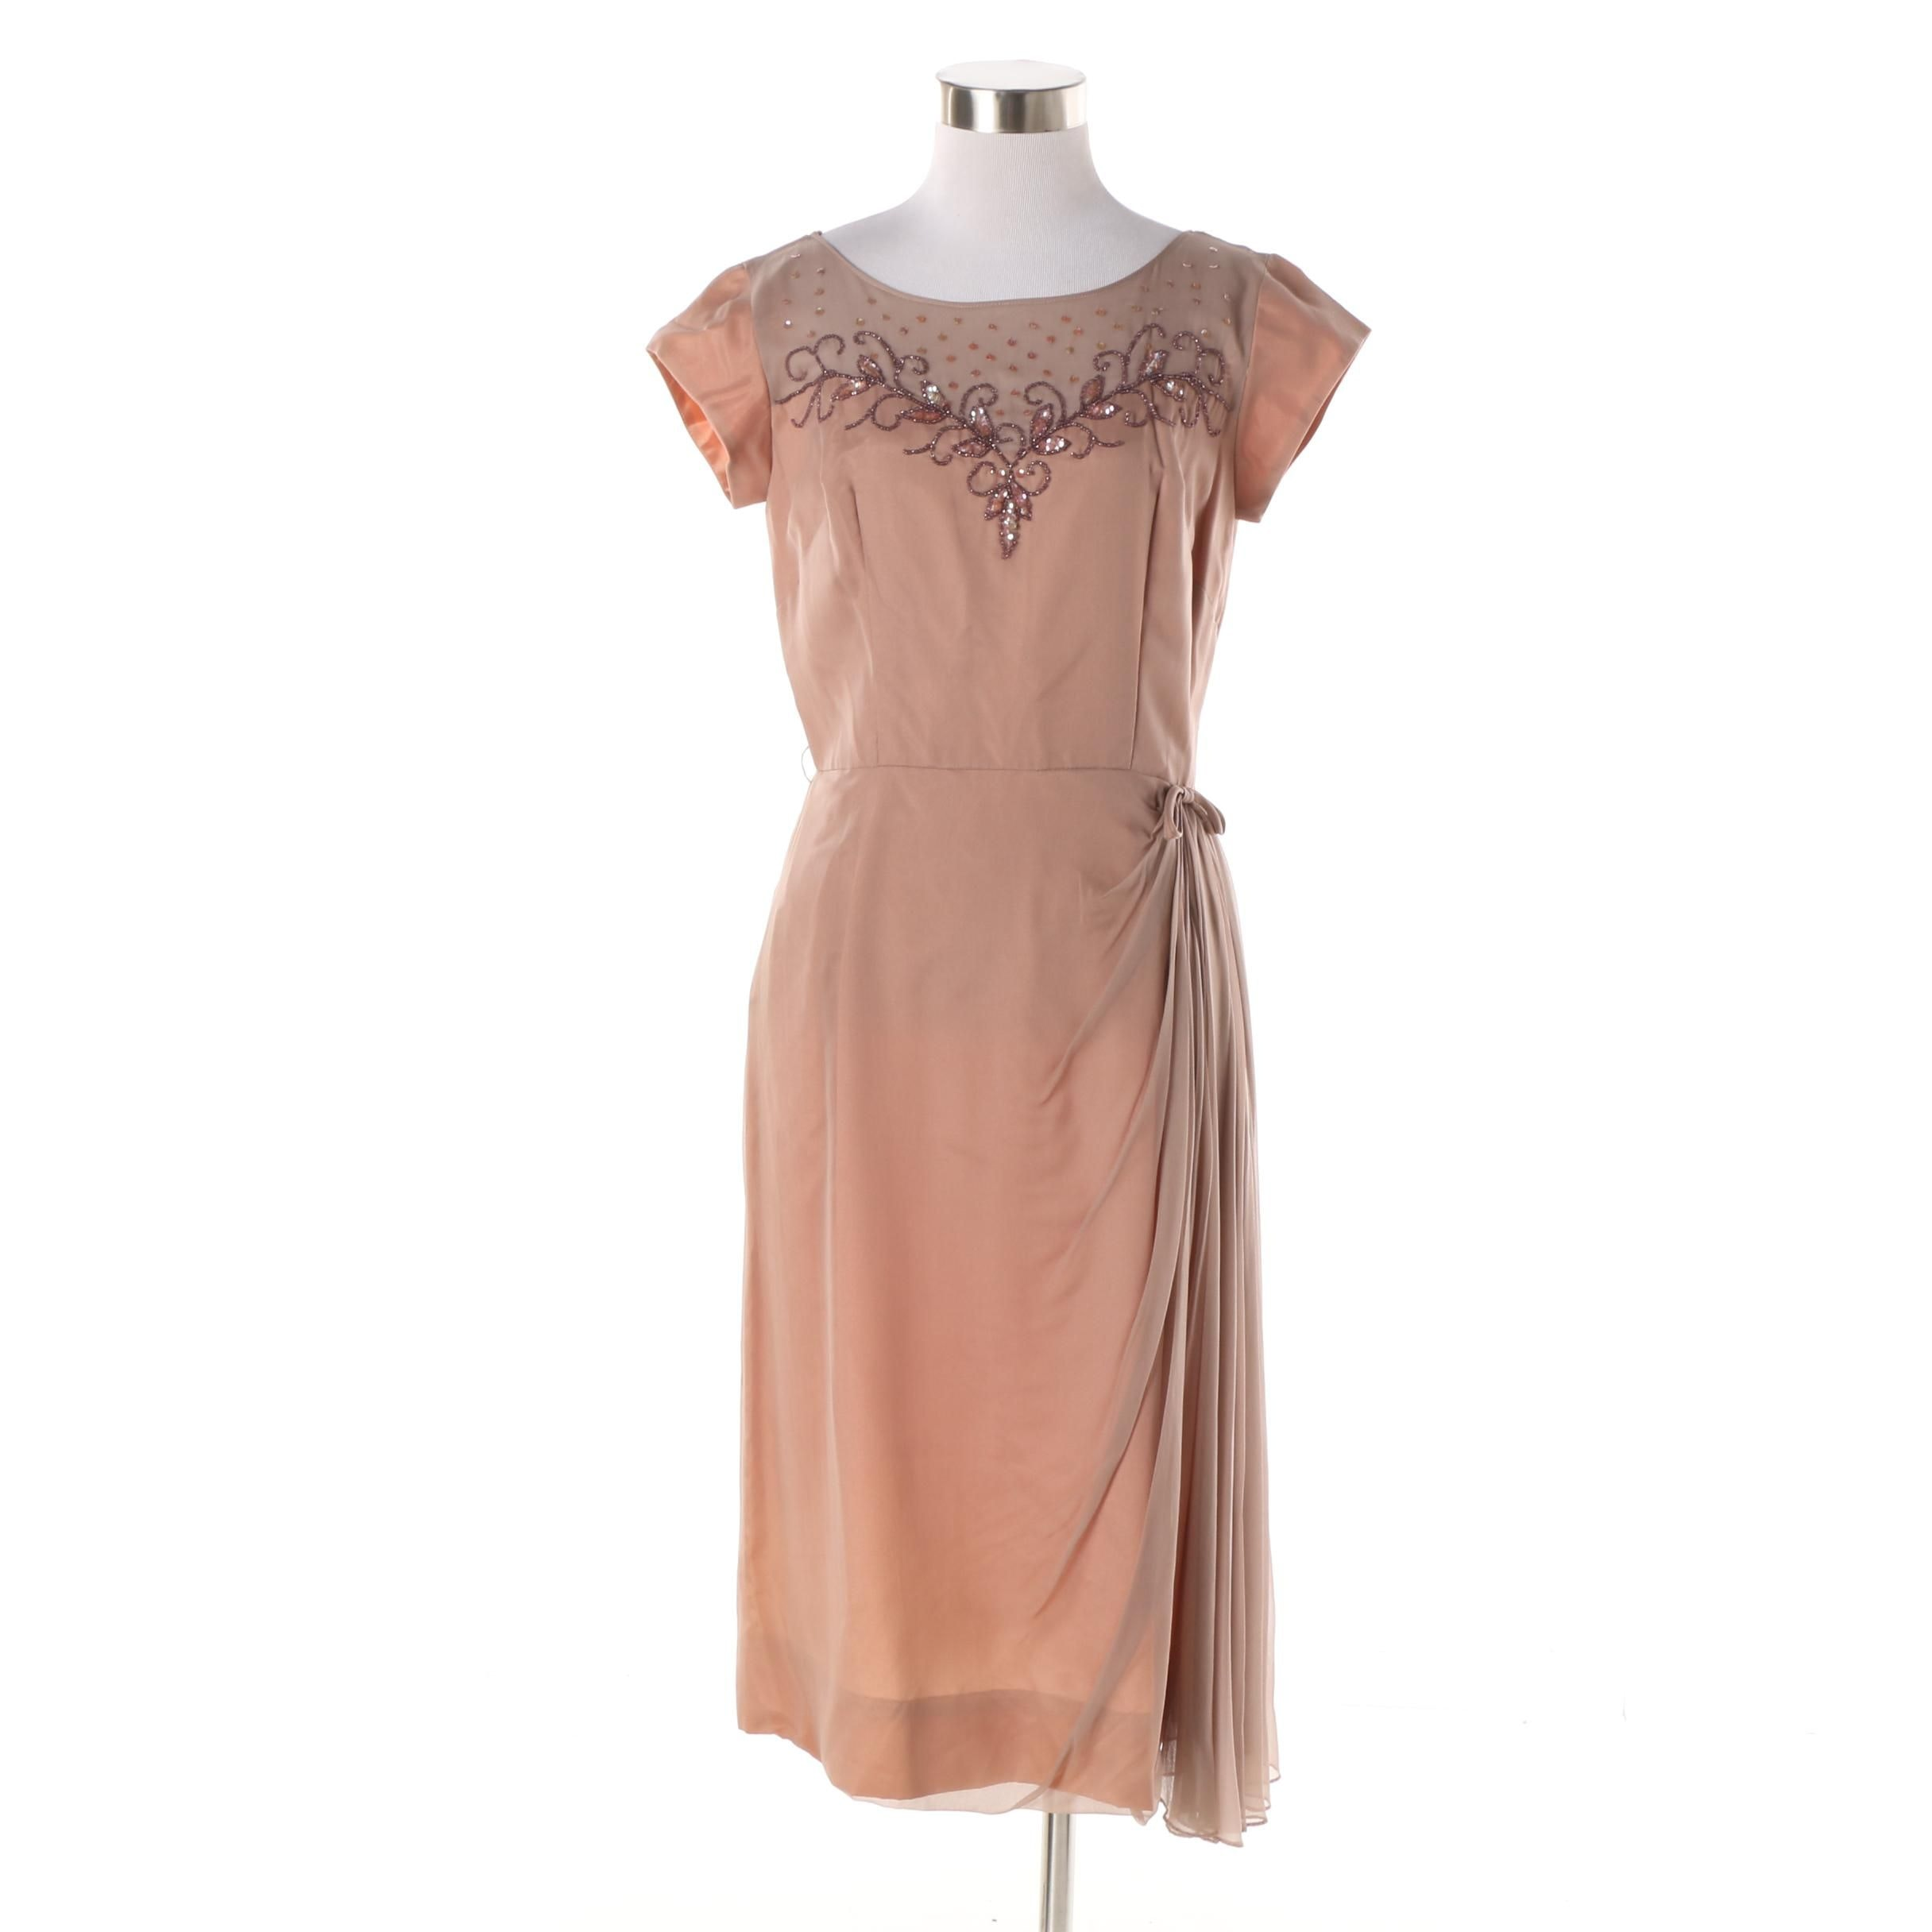 1950s Vintage Mauve Beaded Cocktail Dress with Chiffon Draped Skirt